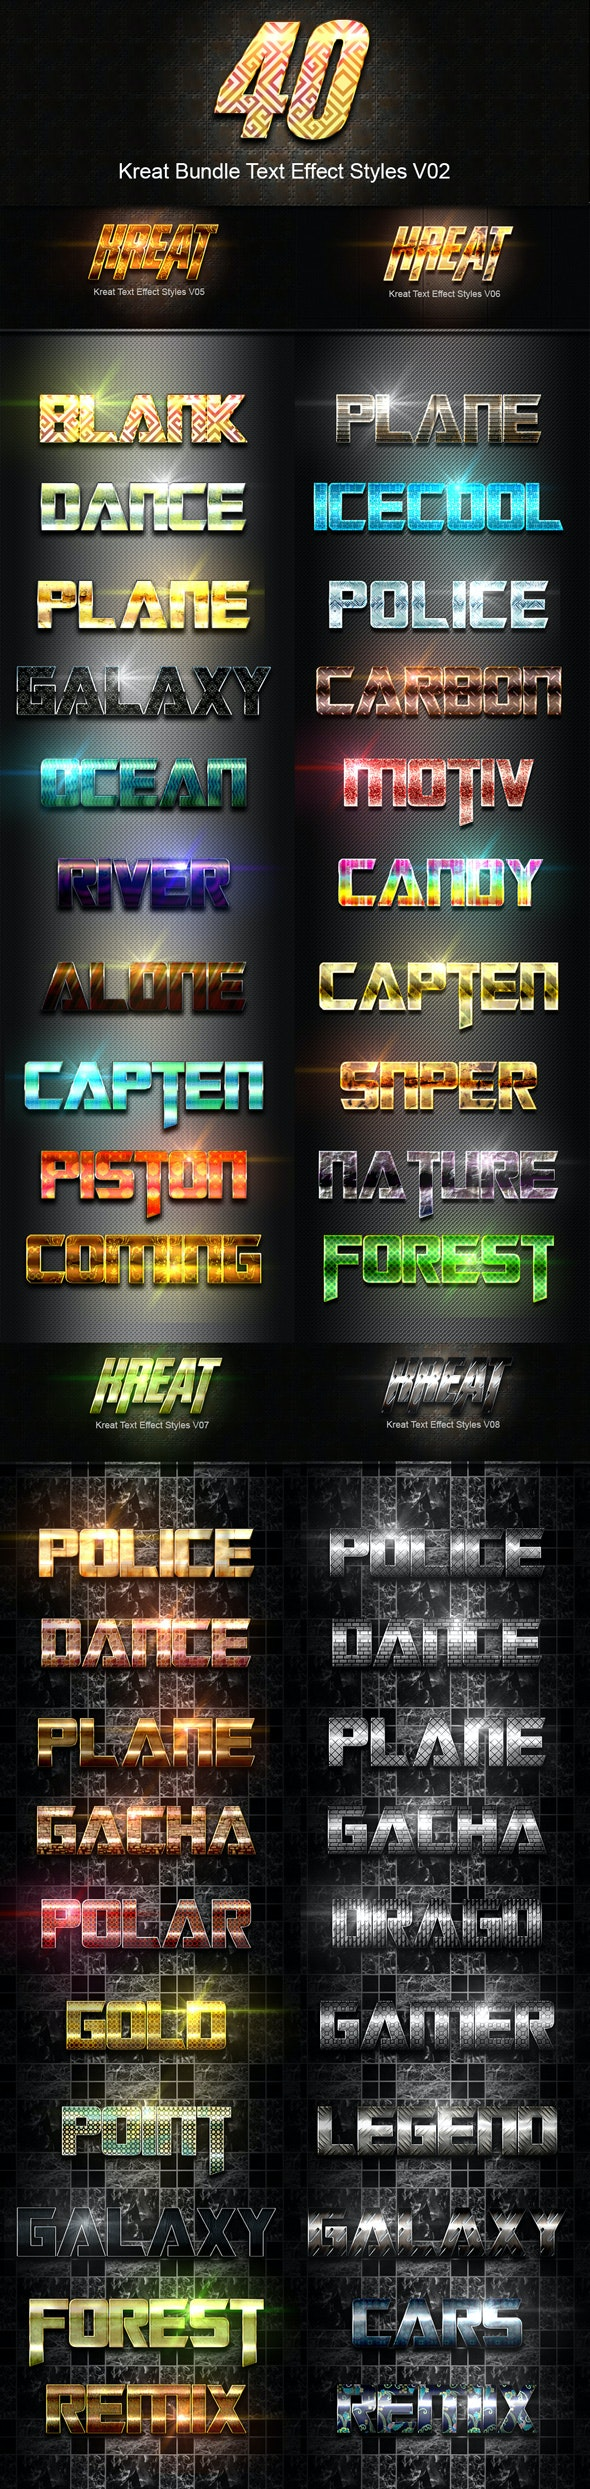 40 Kreat Bundle Text Effect Styles V02 - Text Effects Styles